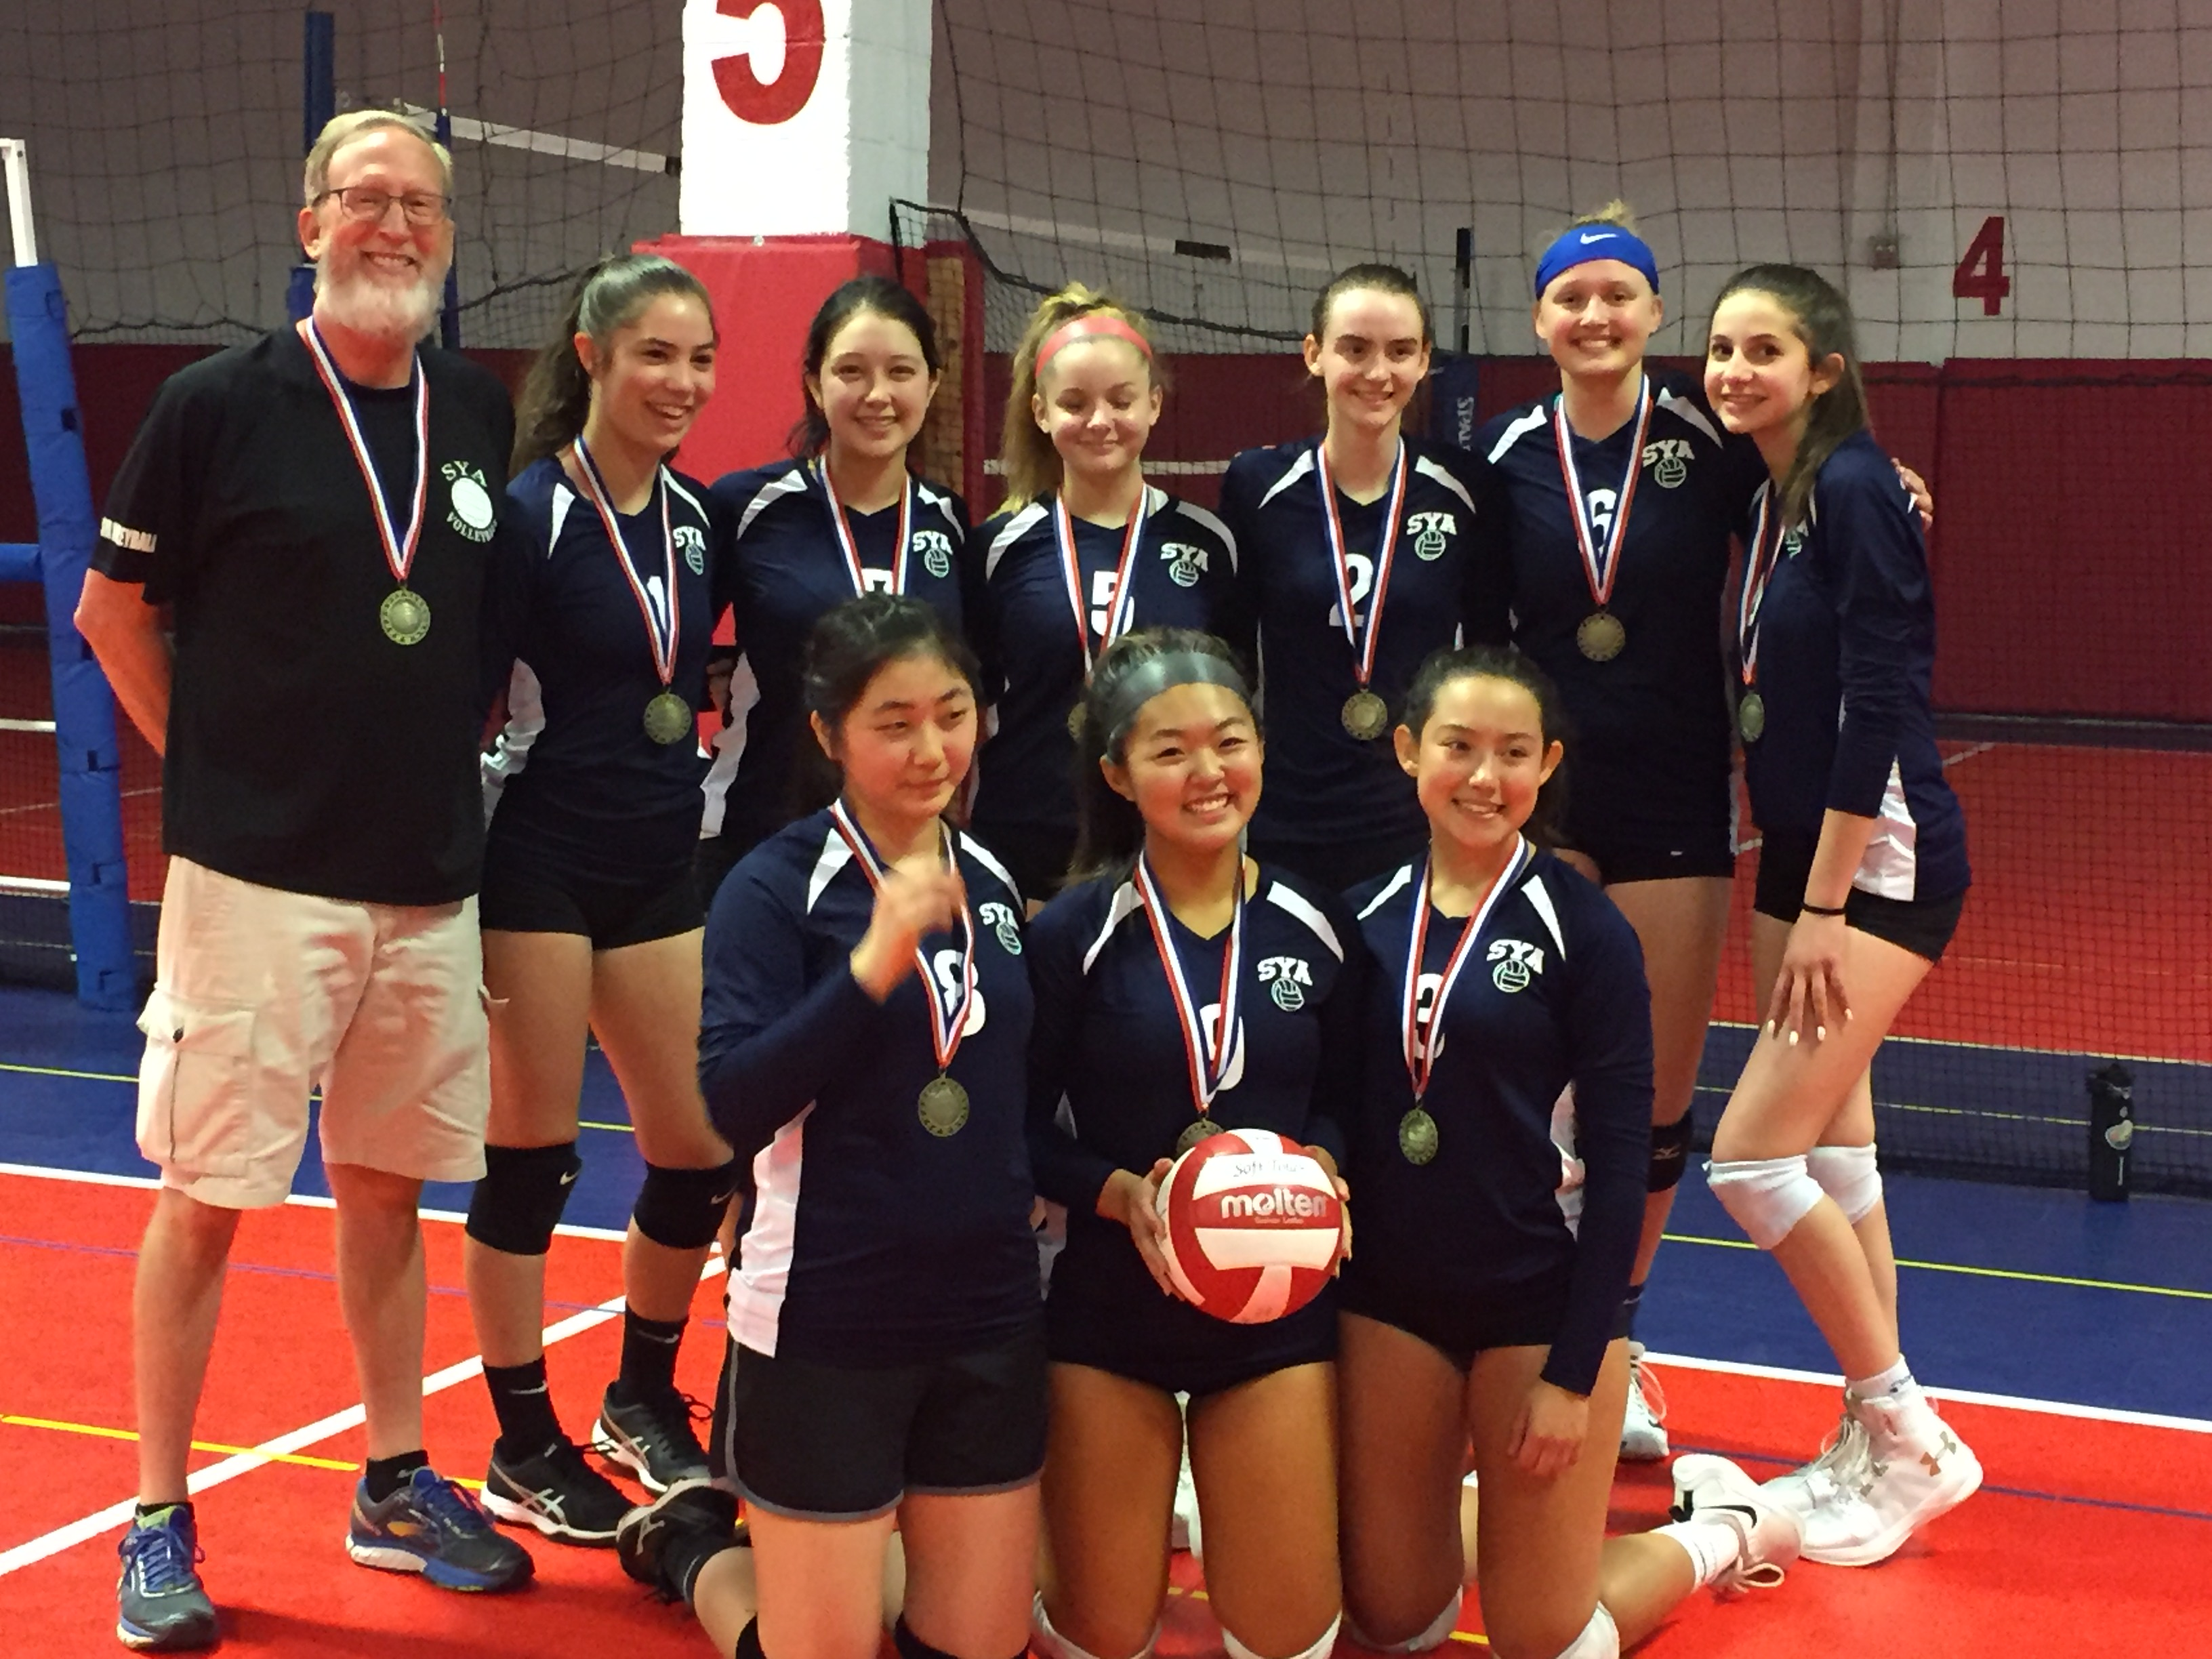 About Sya Travel Volleyball Southwestern Youth Association